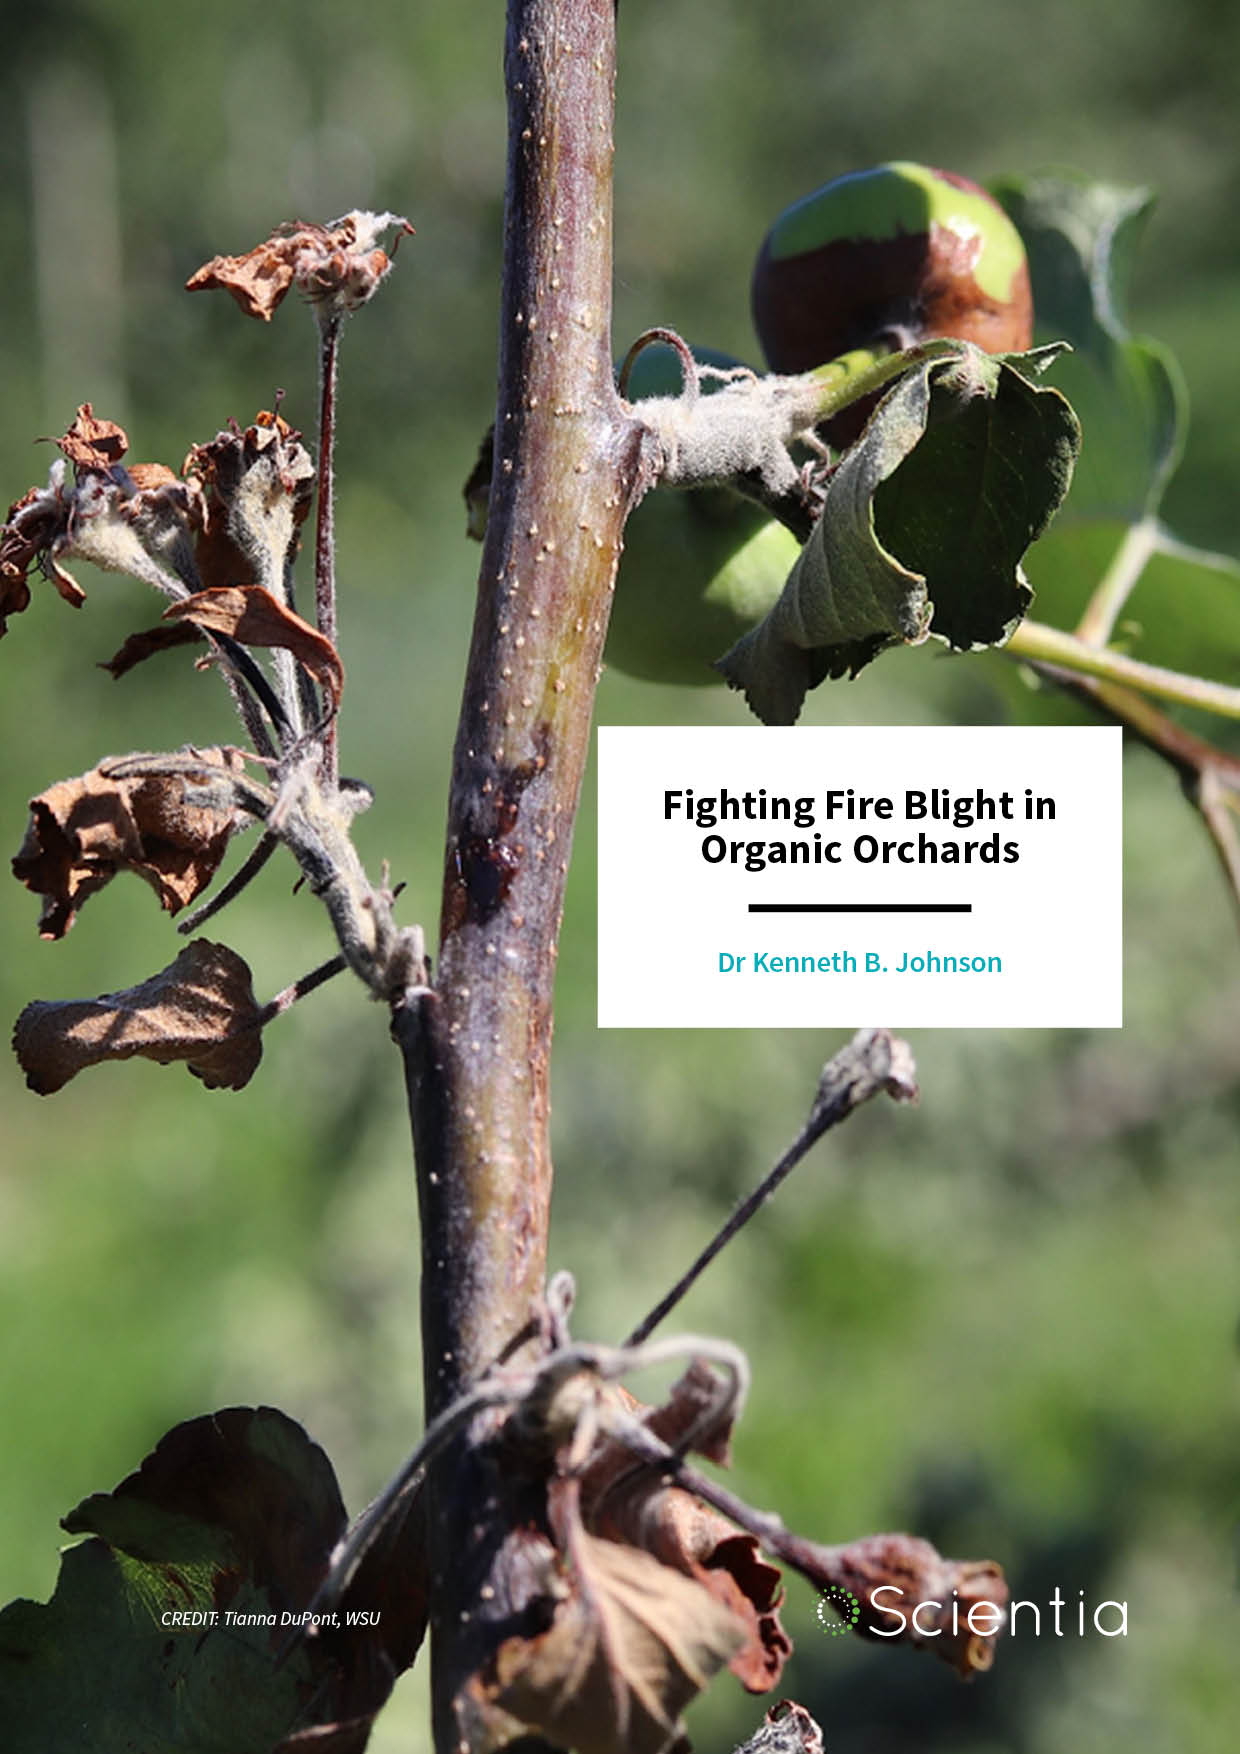 Dr Kenneth Johnson – Fighting Fire Blight in Organic Orchards